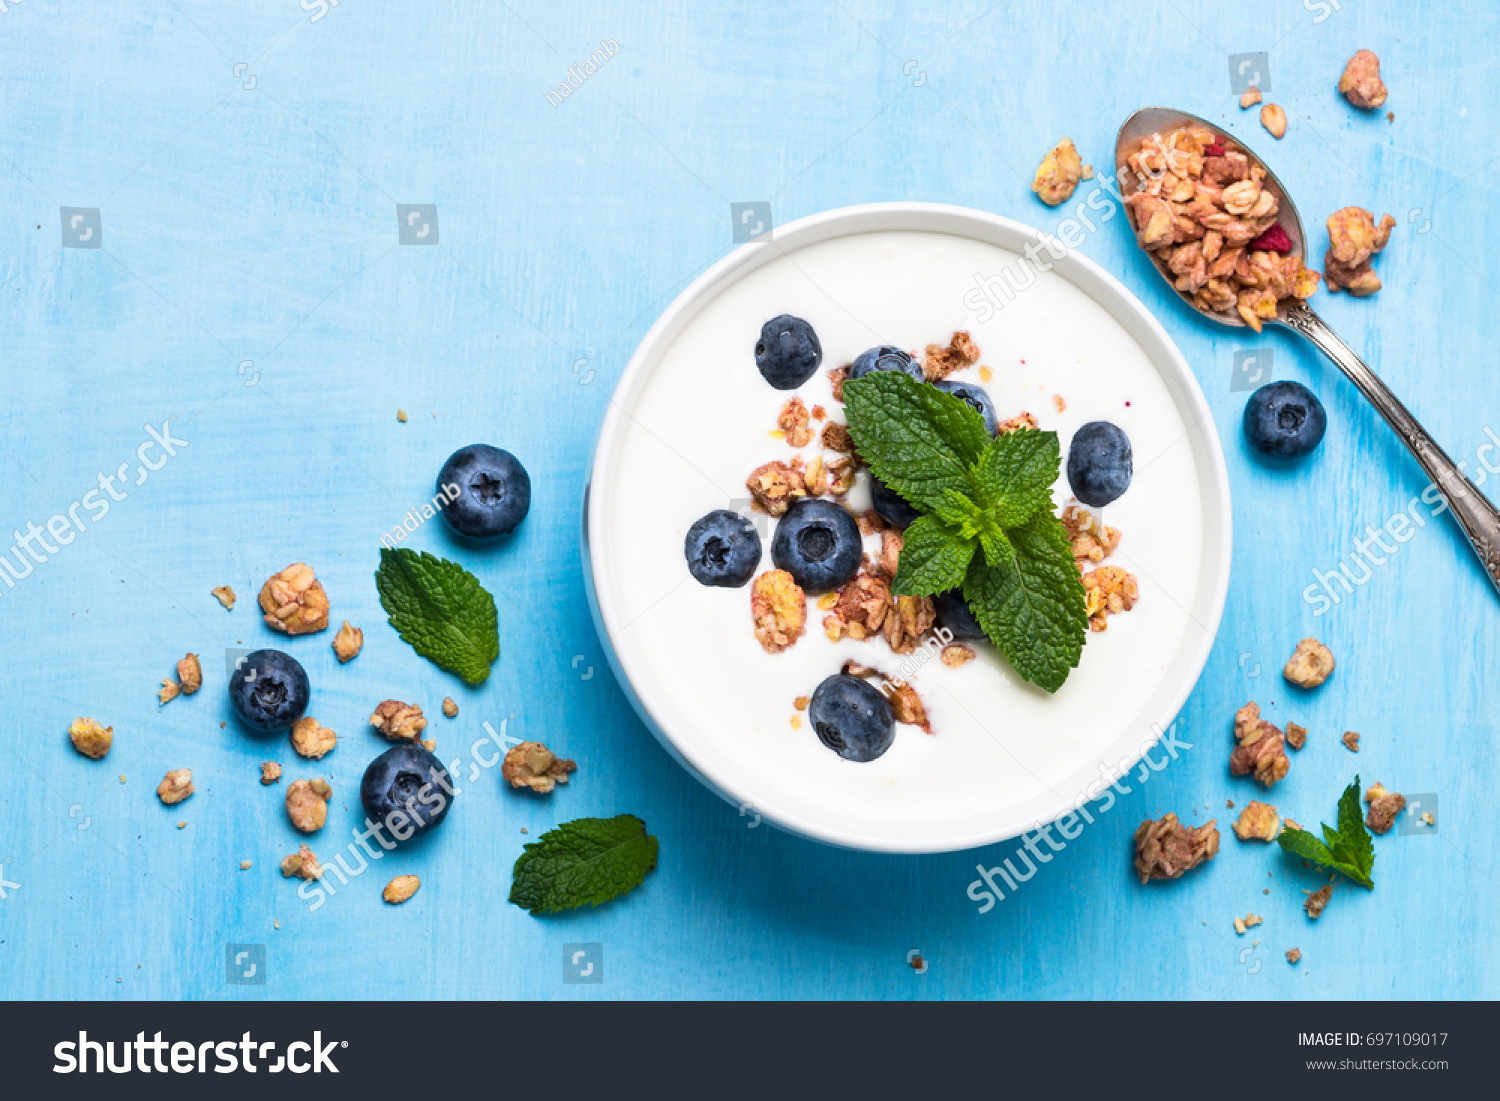 Greek yogurt granola and blueberries on blue table top view. Healthy food nutrition, snack or breakfast. #697109017